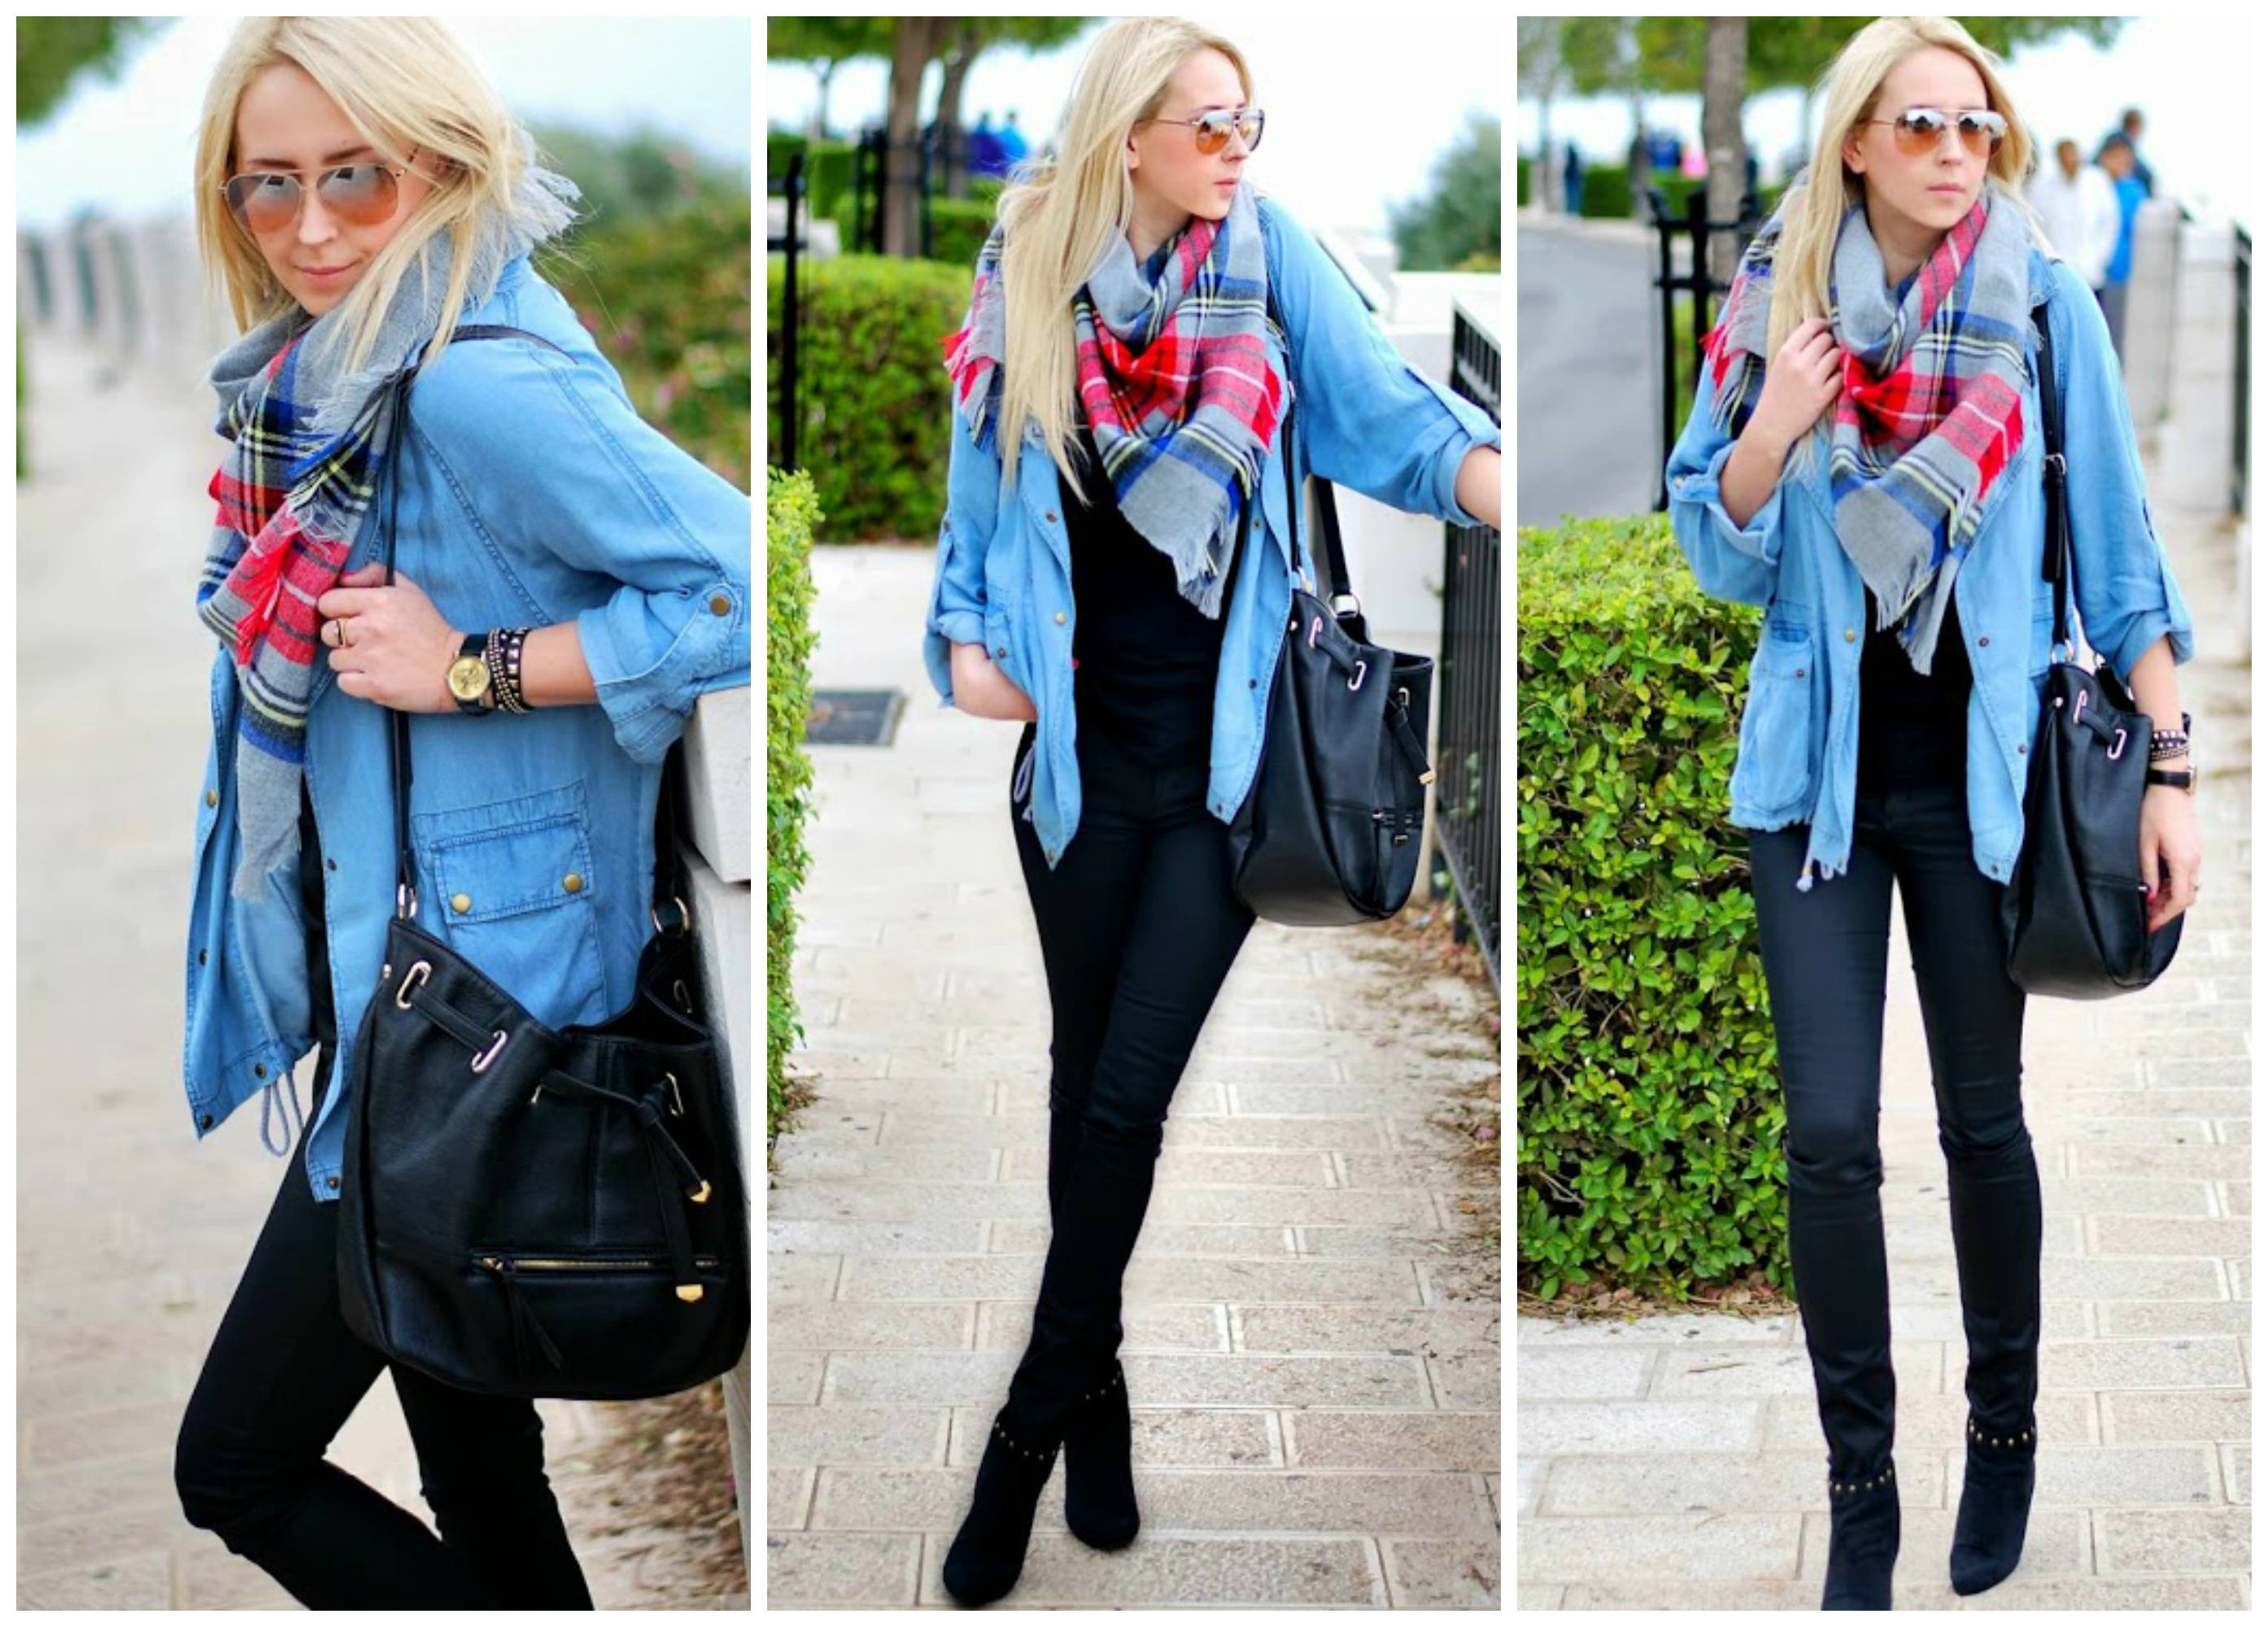 big-scarf-with-denim-jacket Outfits with Scarves-18 Chic Ways to Wear Scarves for Girls